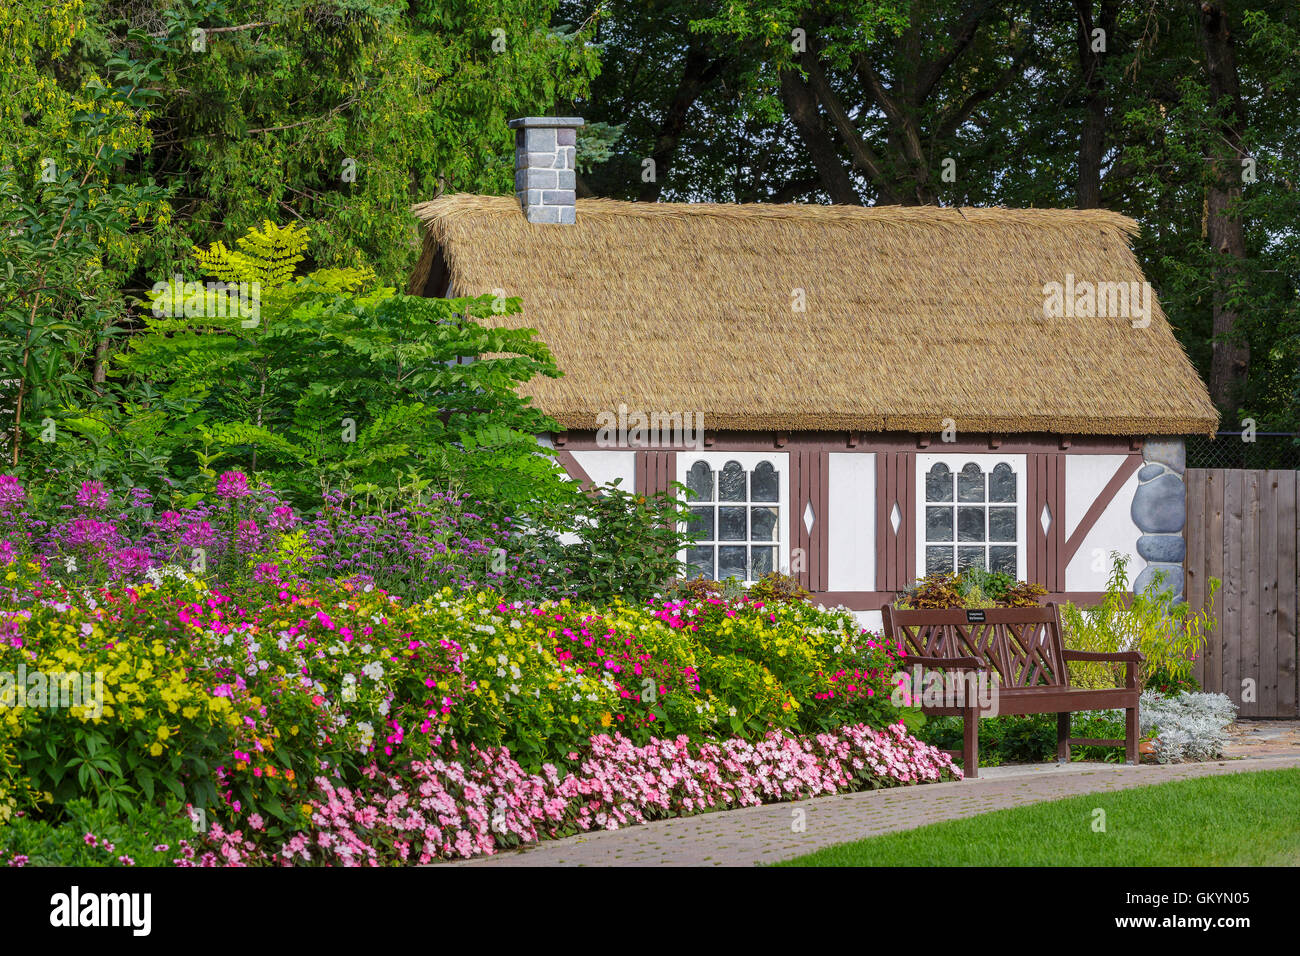 Country cottage in the English Garden, Assiniboine Park, Winnipeg, Manitoba, Canada. - Stock Image